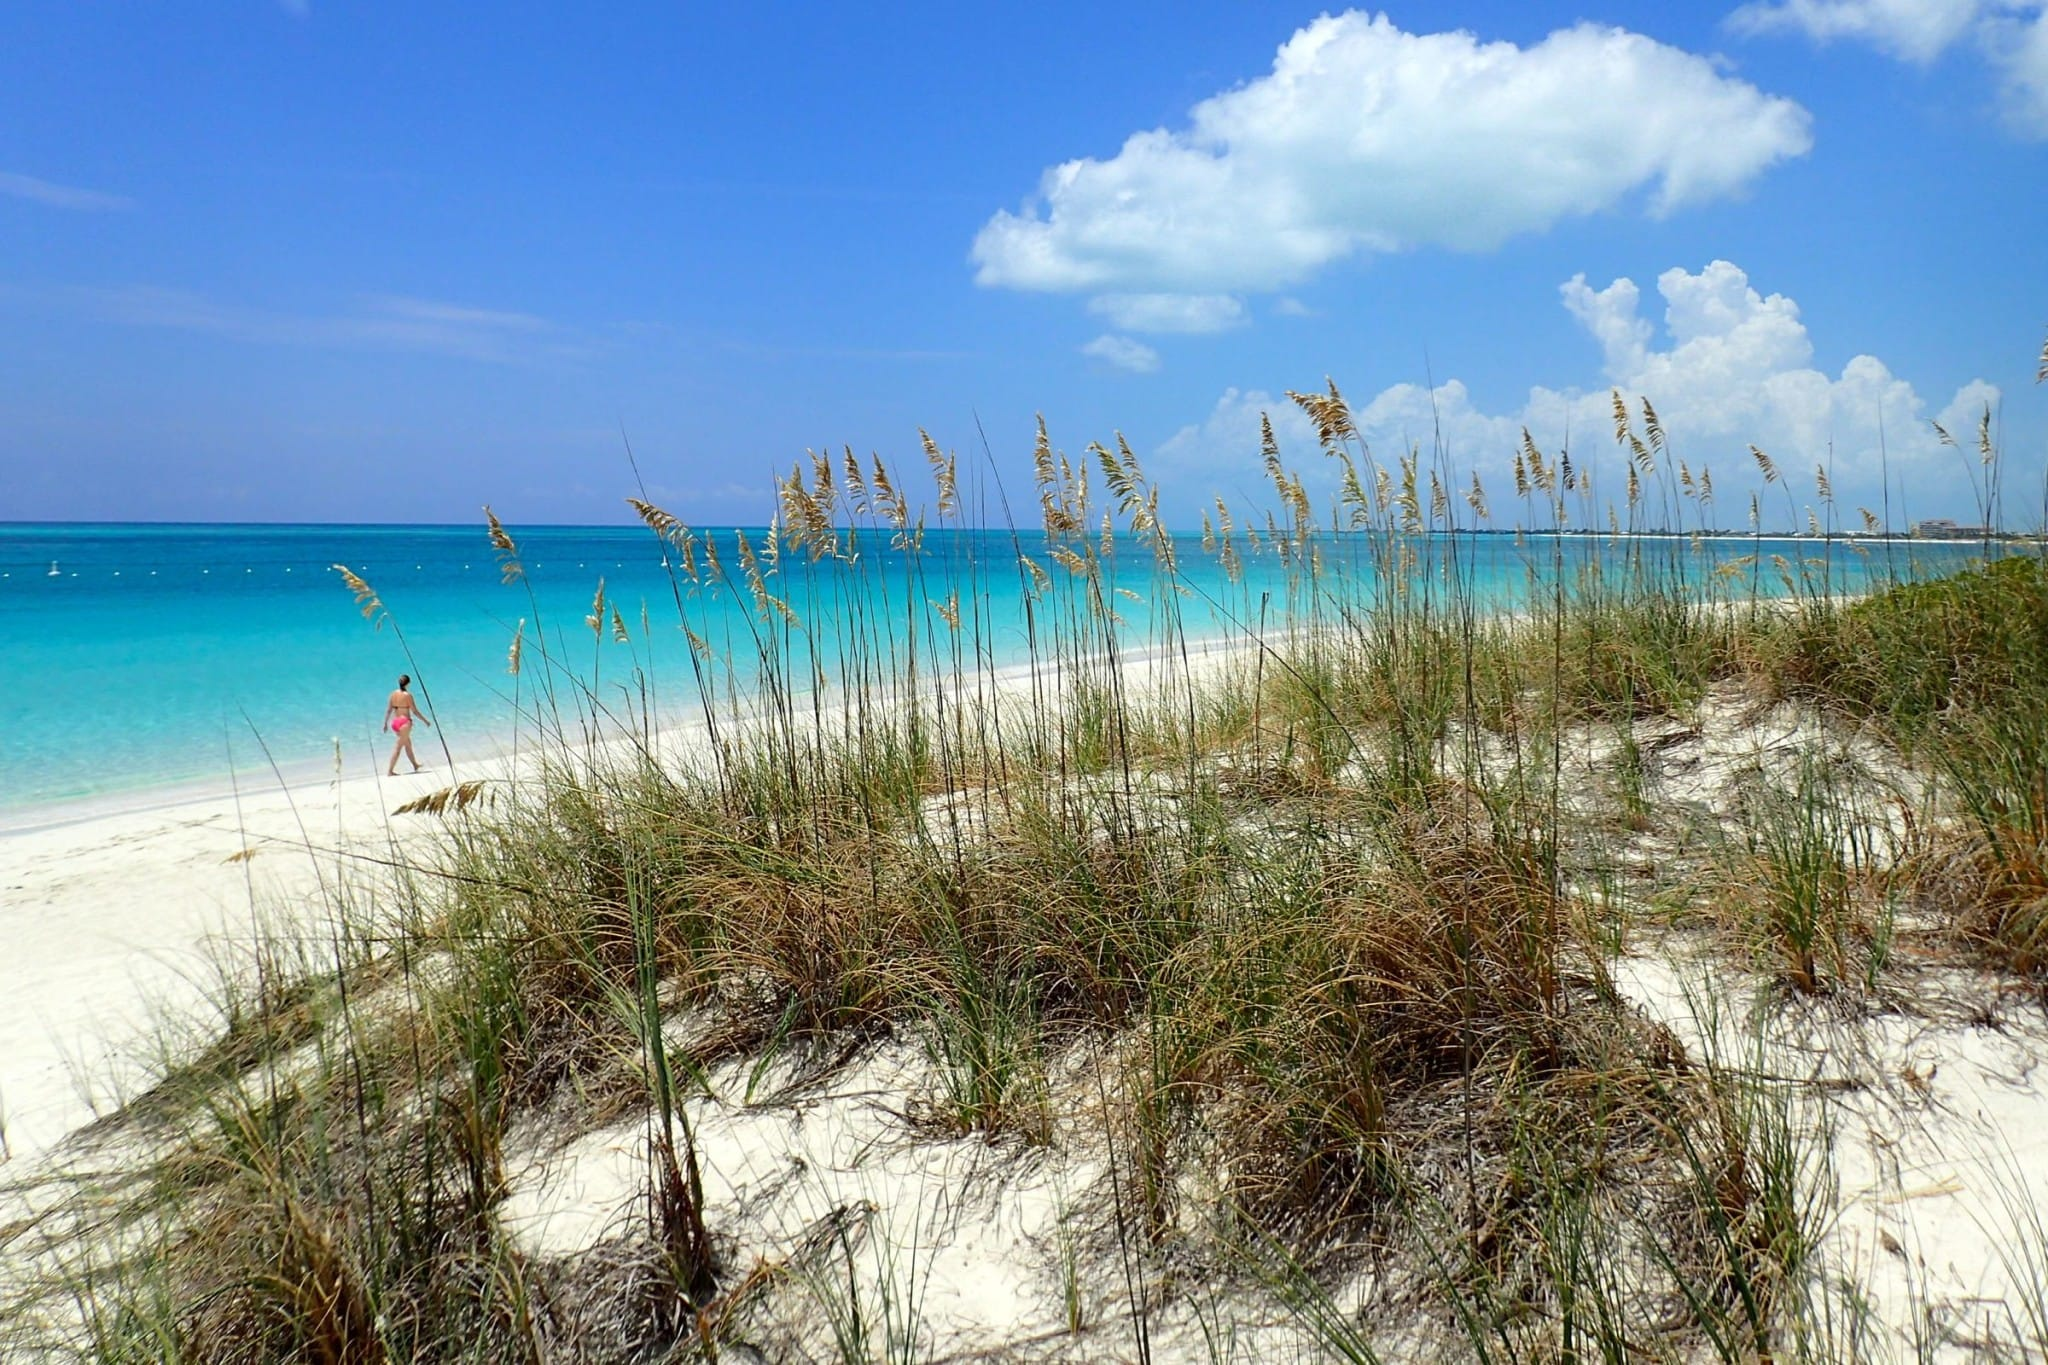 Grace Bay, Turks and Caicos: Wish You Were Here